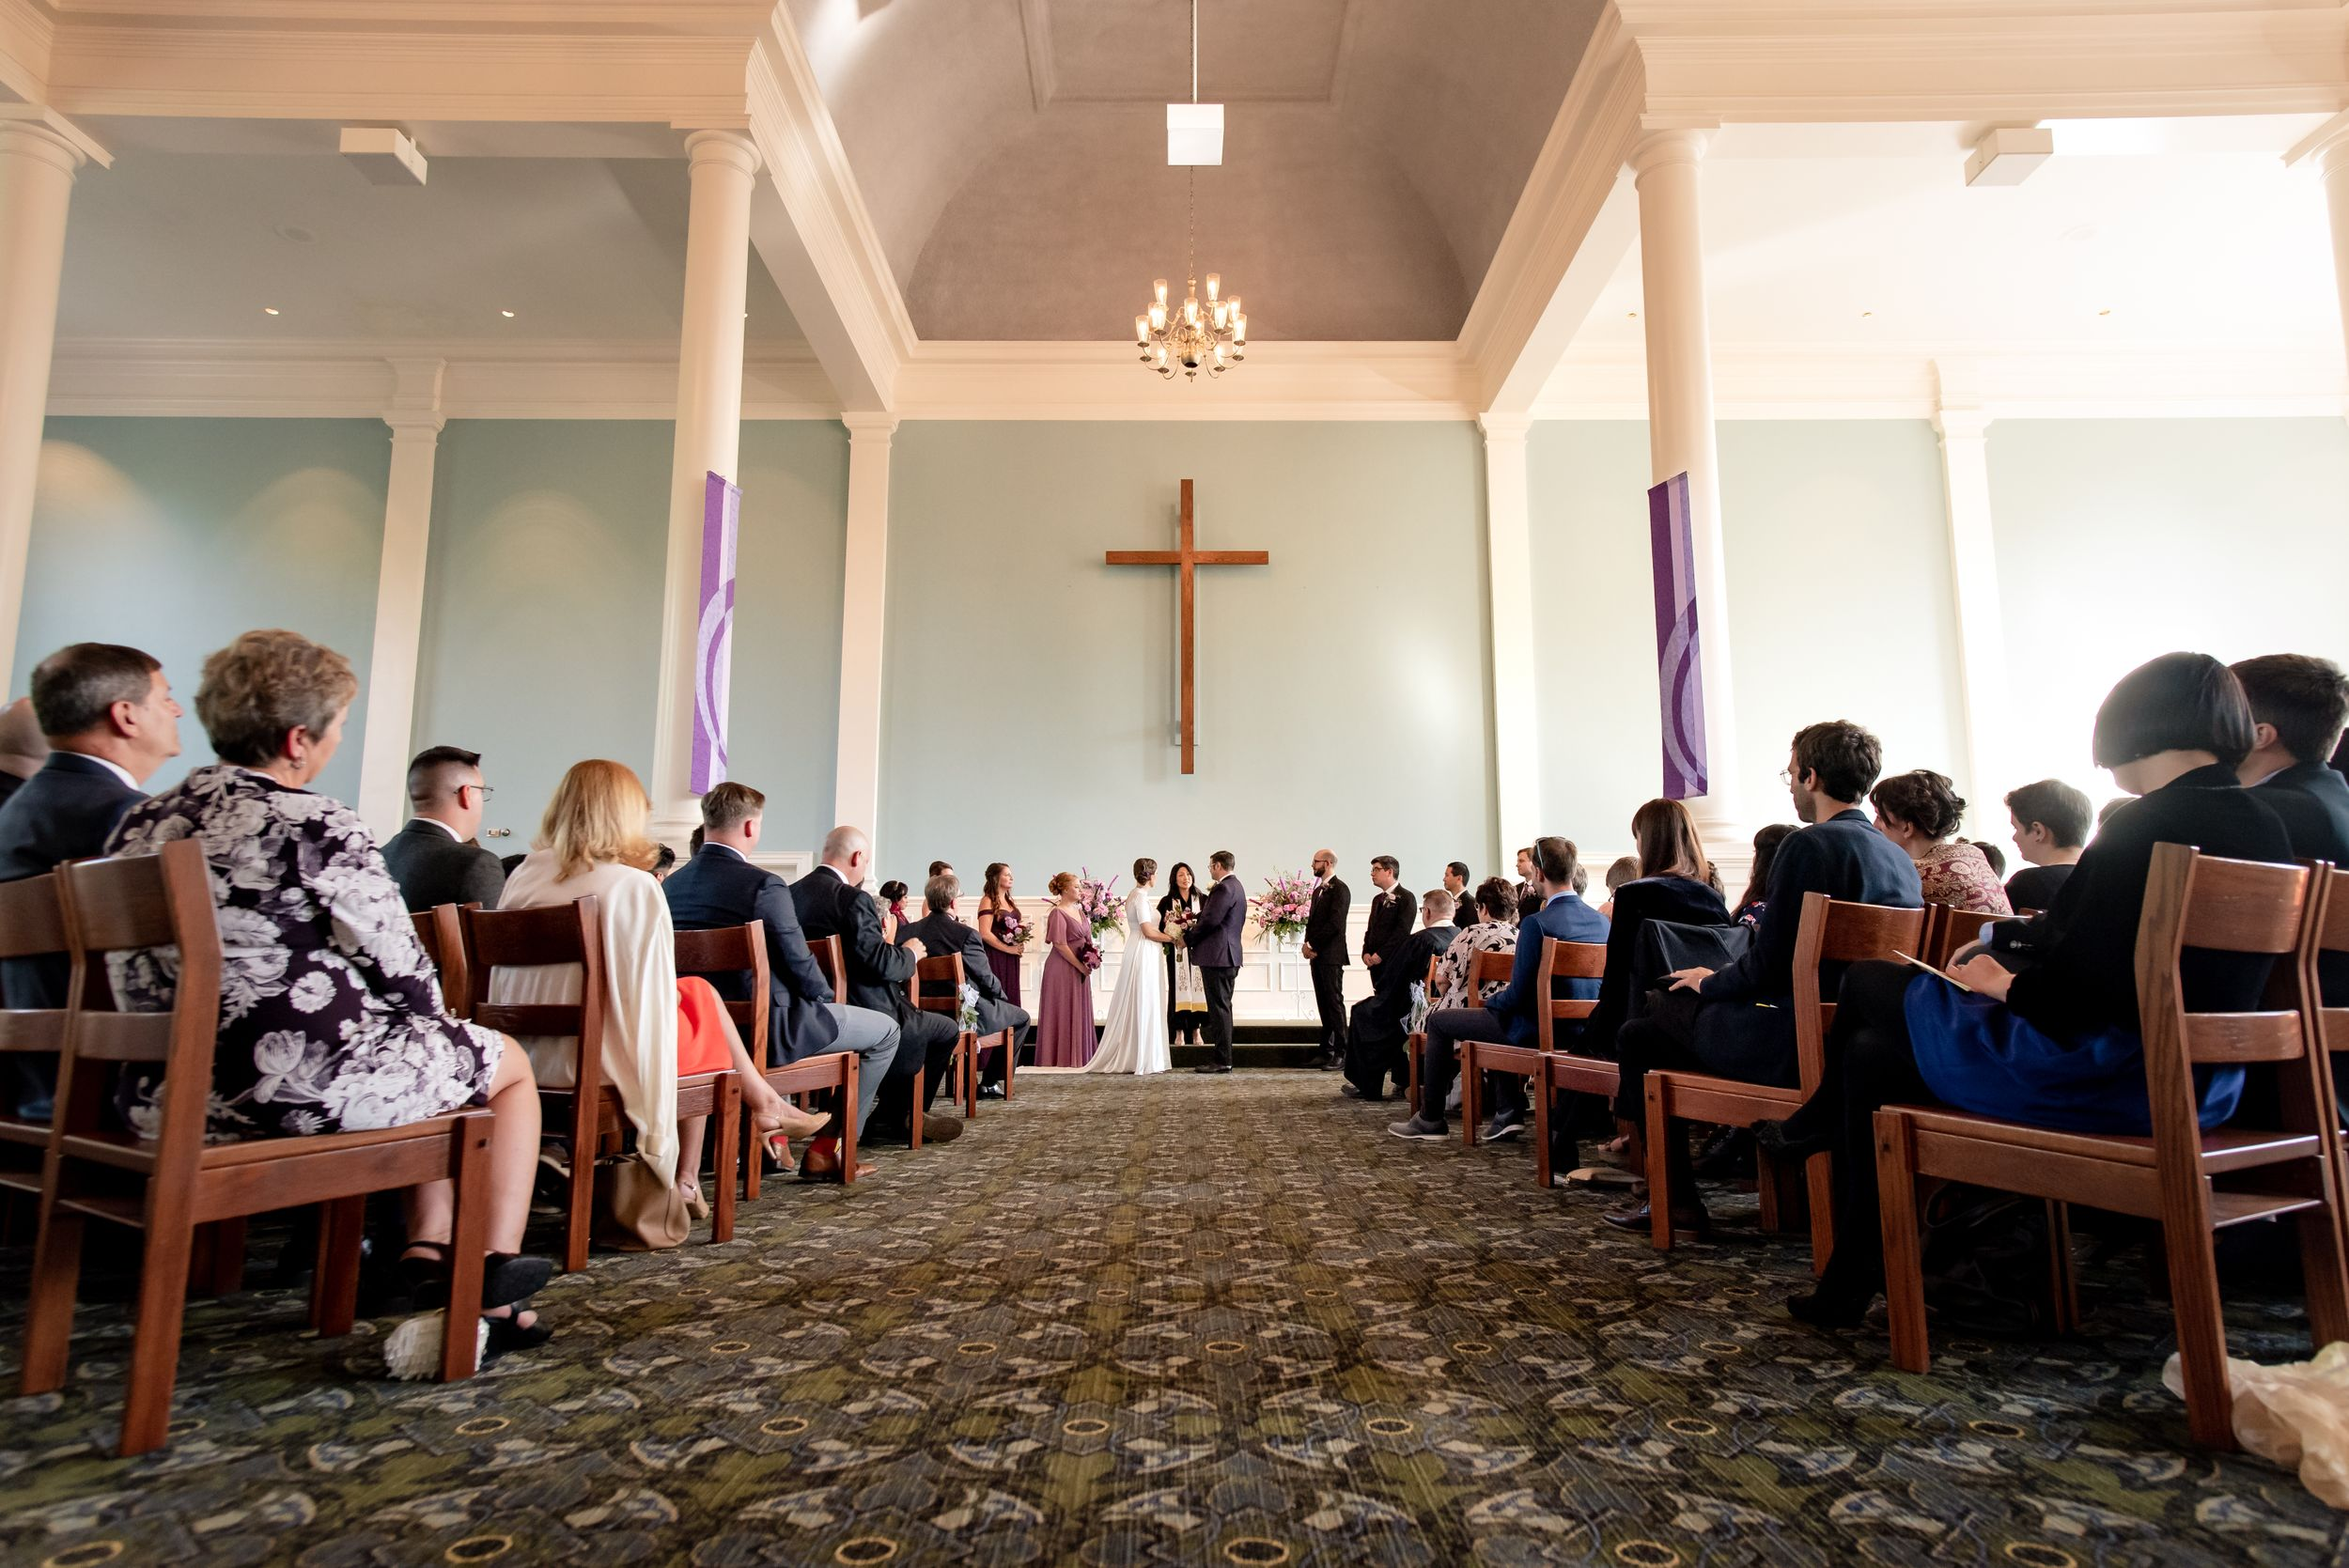 wedding ceremony in church with couple standing with officient under large cross shot in wide angle to see guests